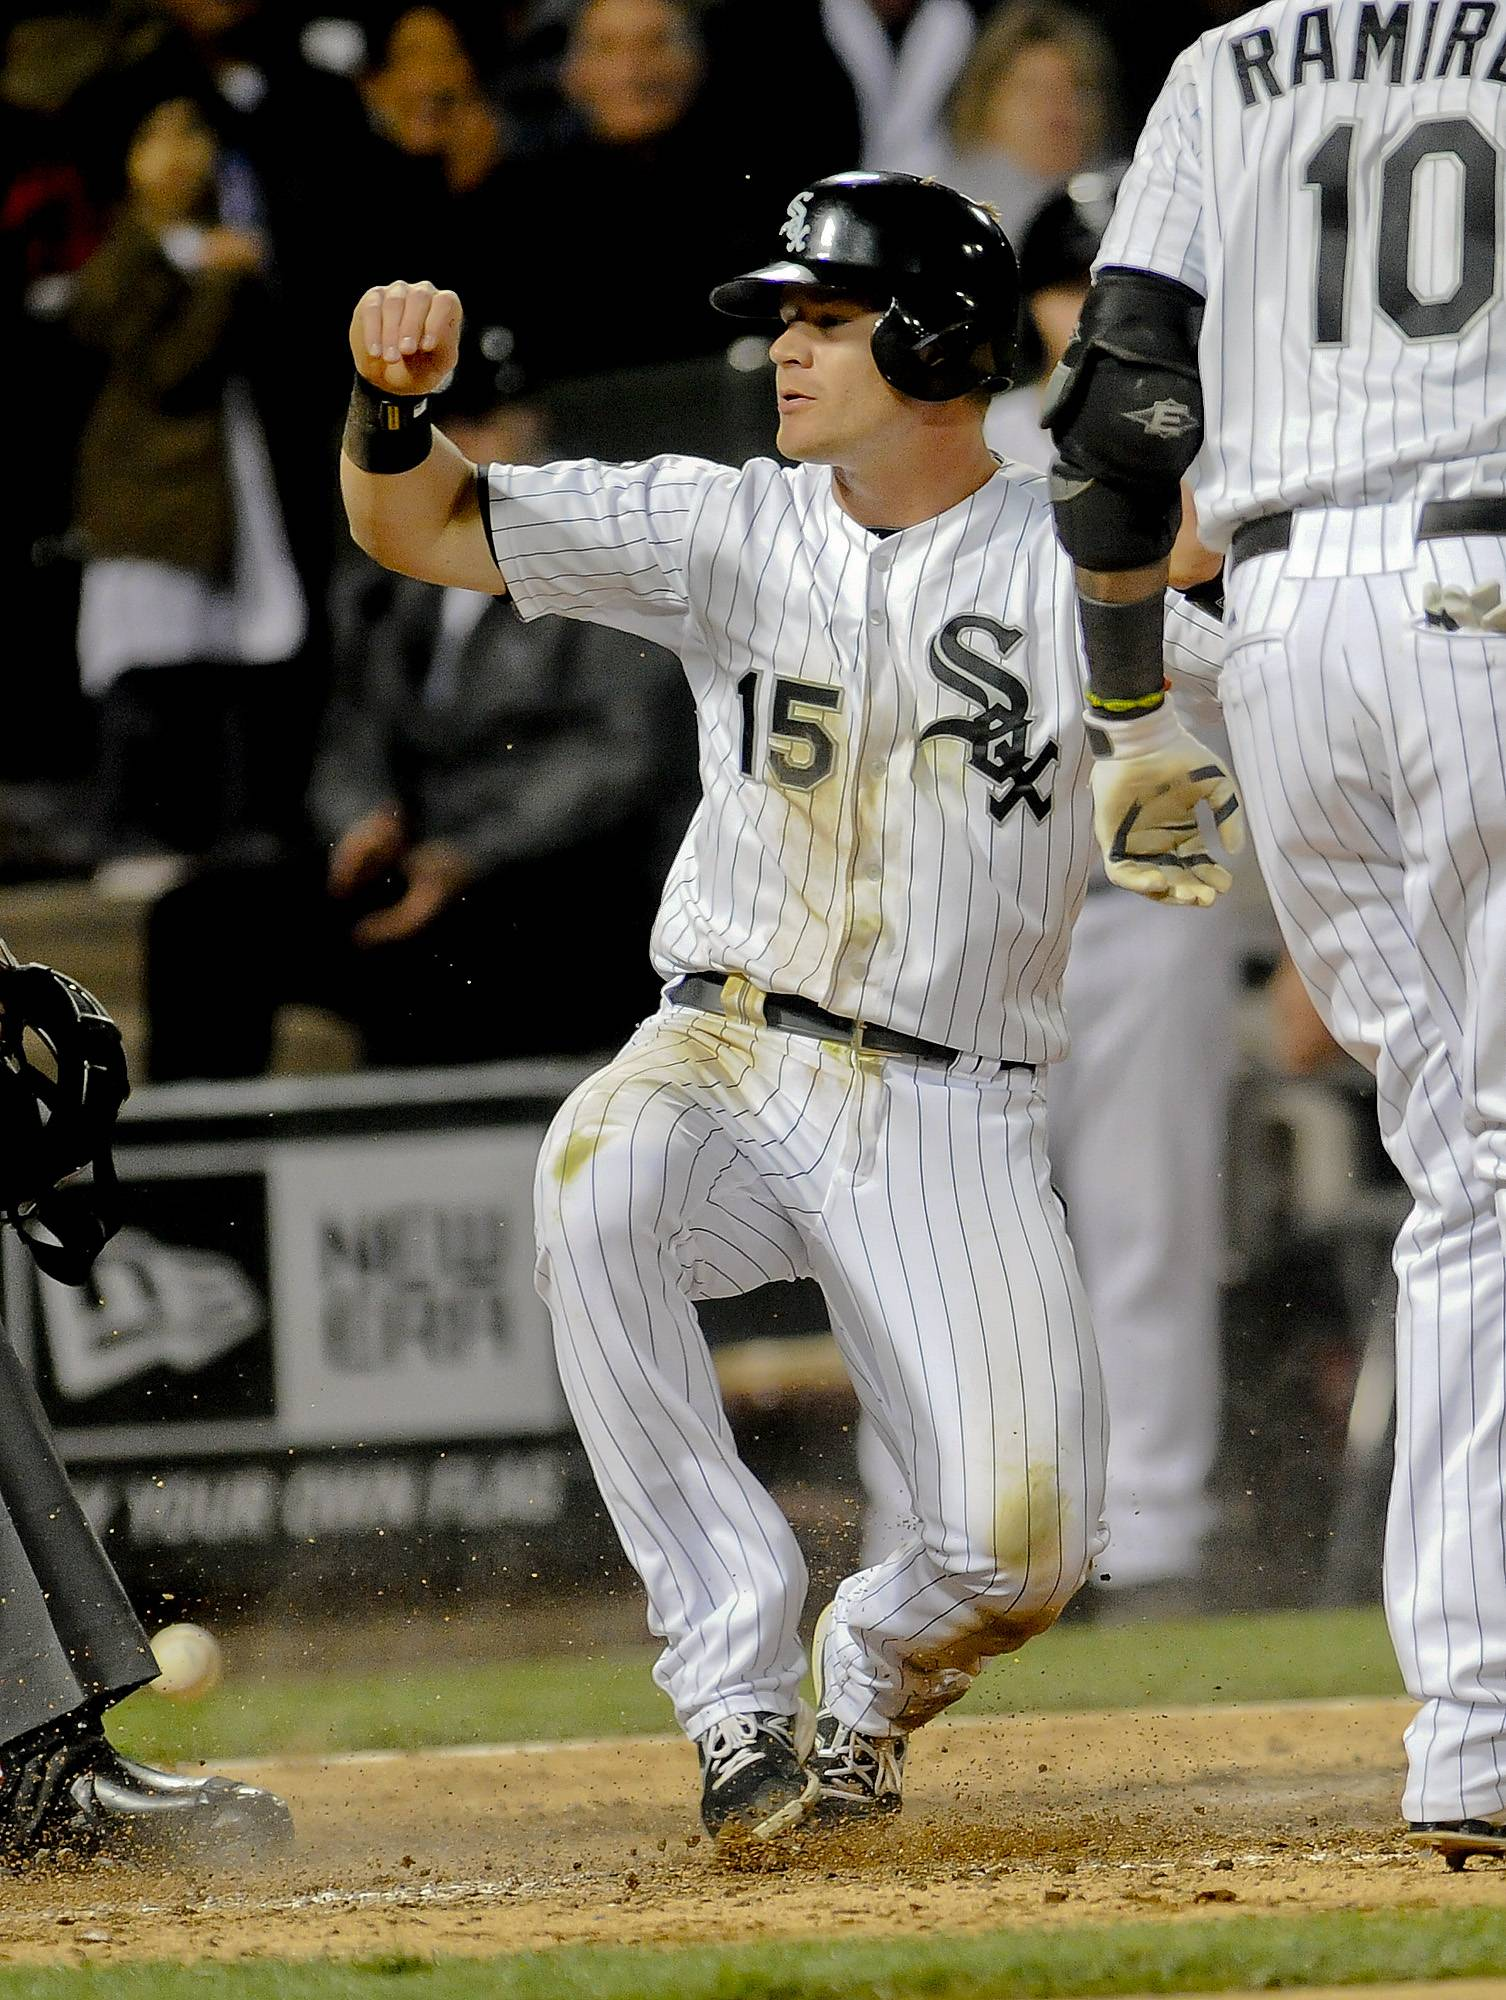 Moises Sierra drove in the winning run with a single in the ninth inning, and the White Sox beat the Cleveland Indians 3-2 Wednesday night to complete a three-game sweep.